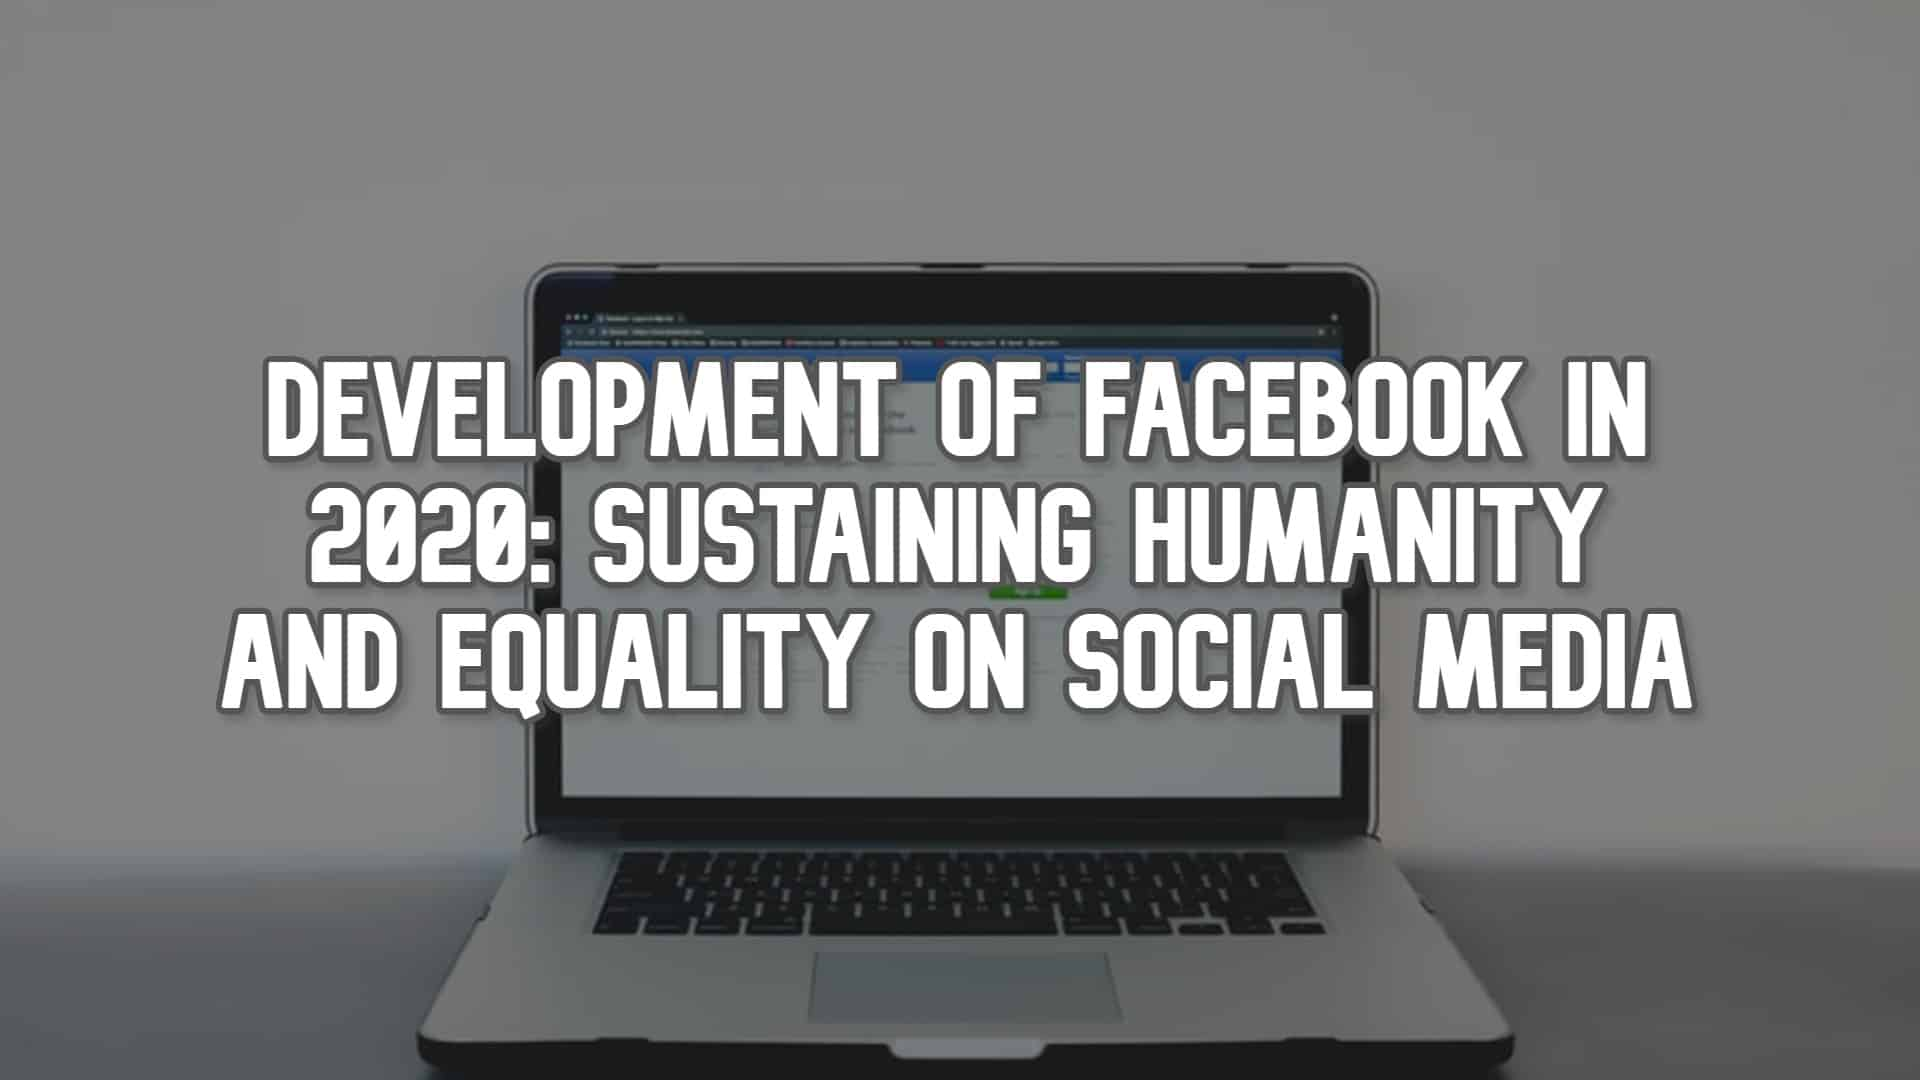 Development of Facebook in 2020: Sustaining Humanity and Equality on Social Media